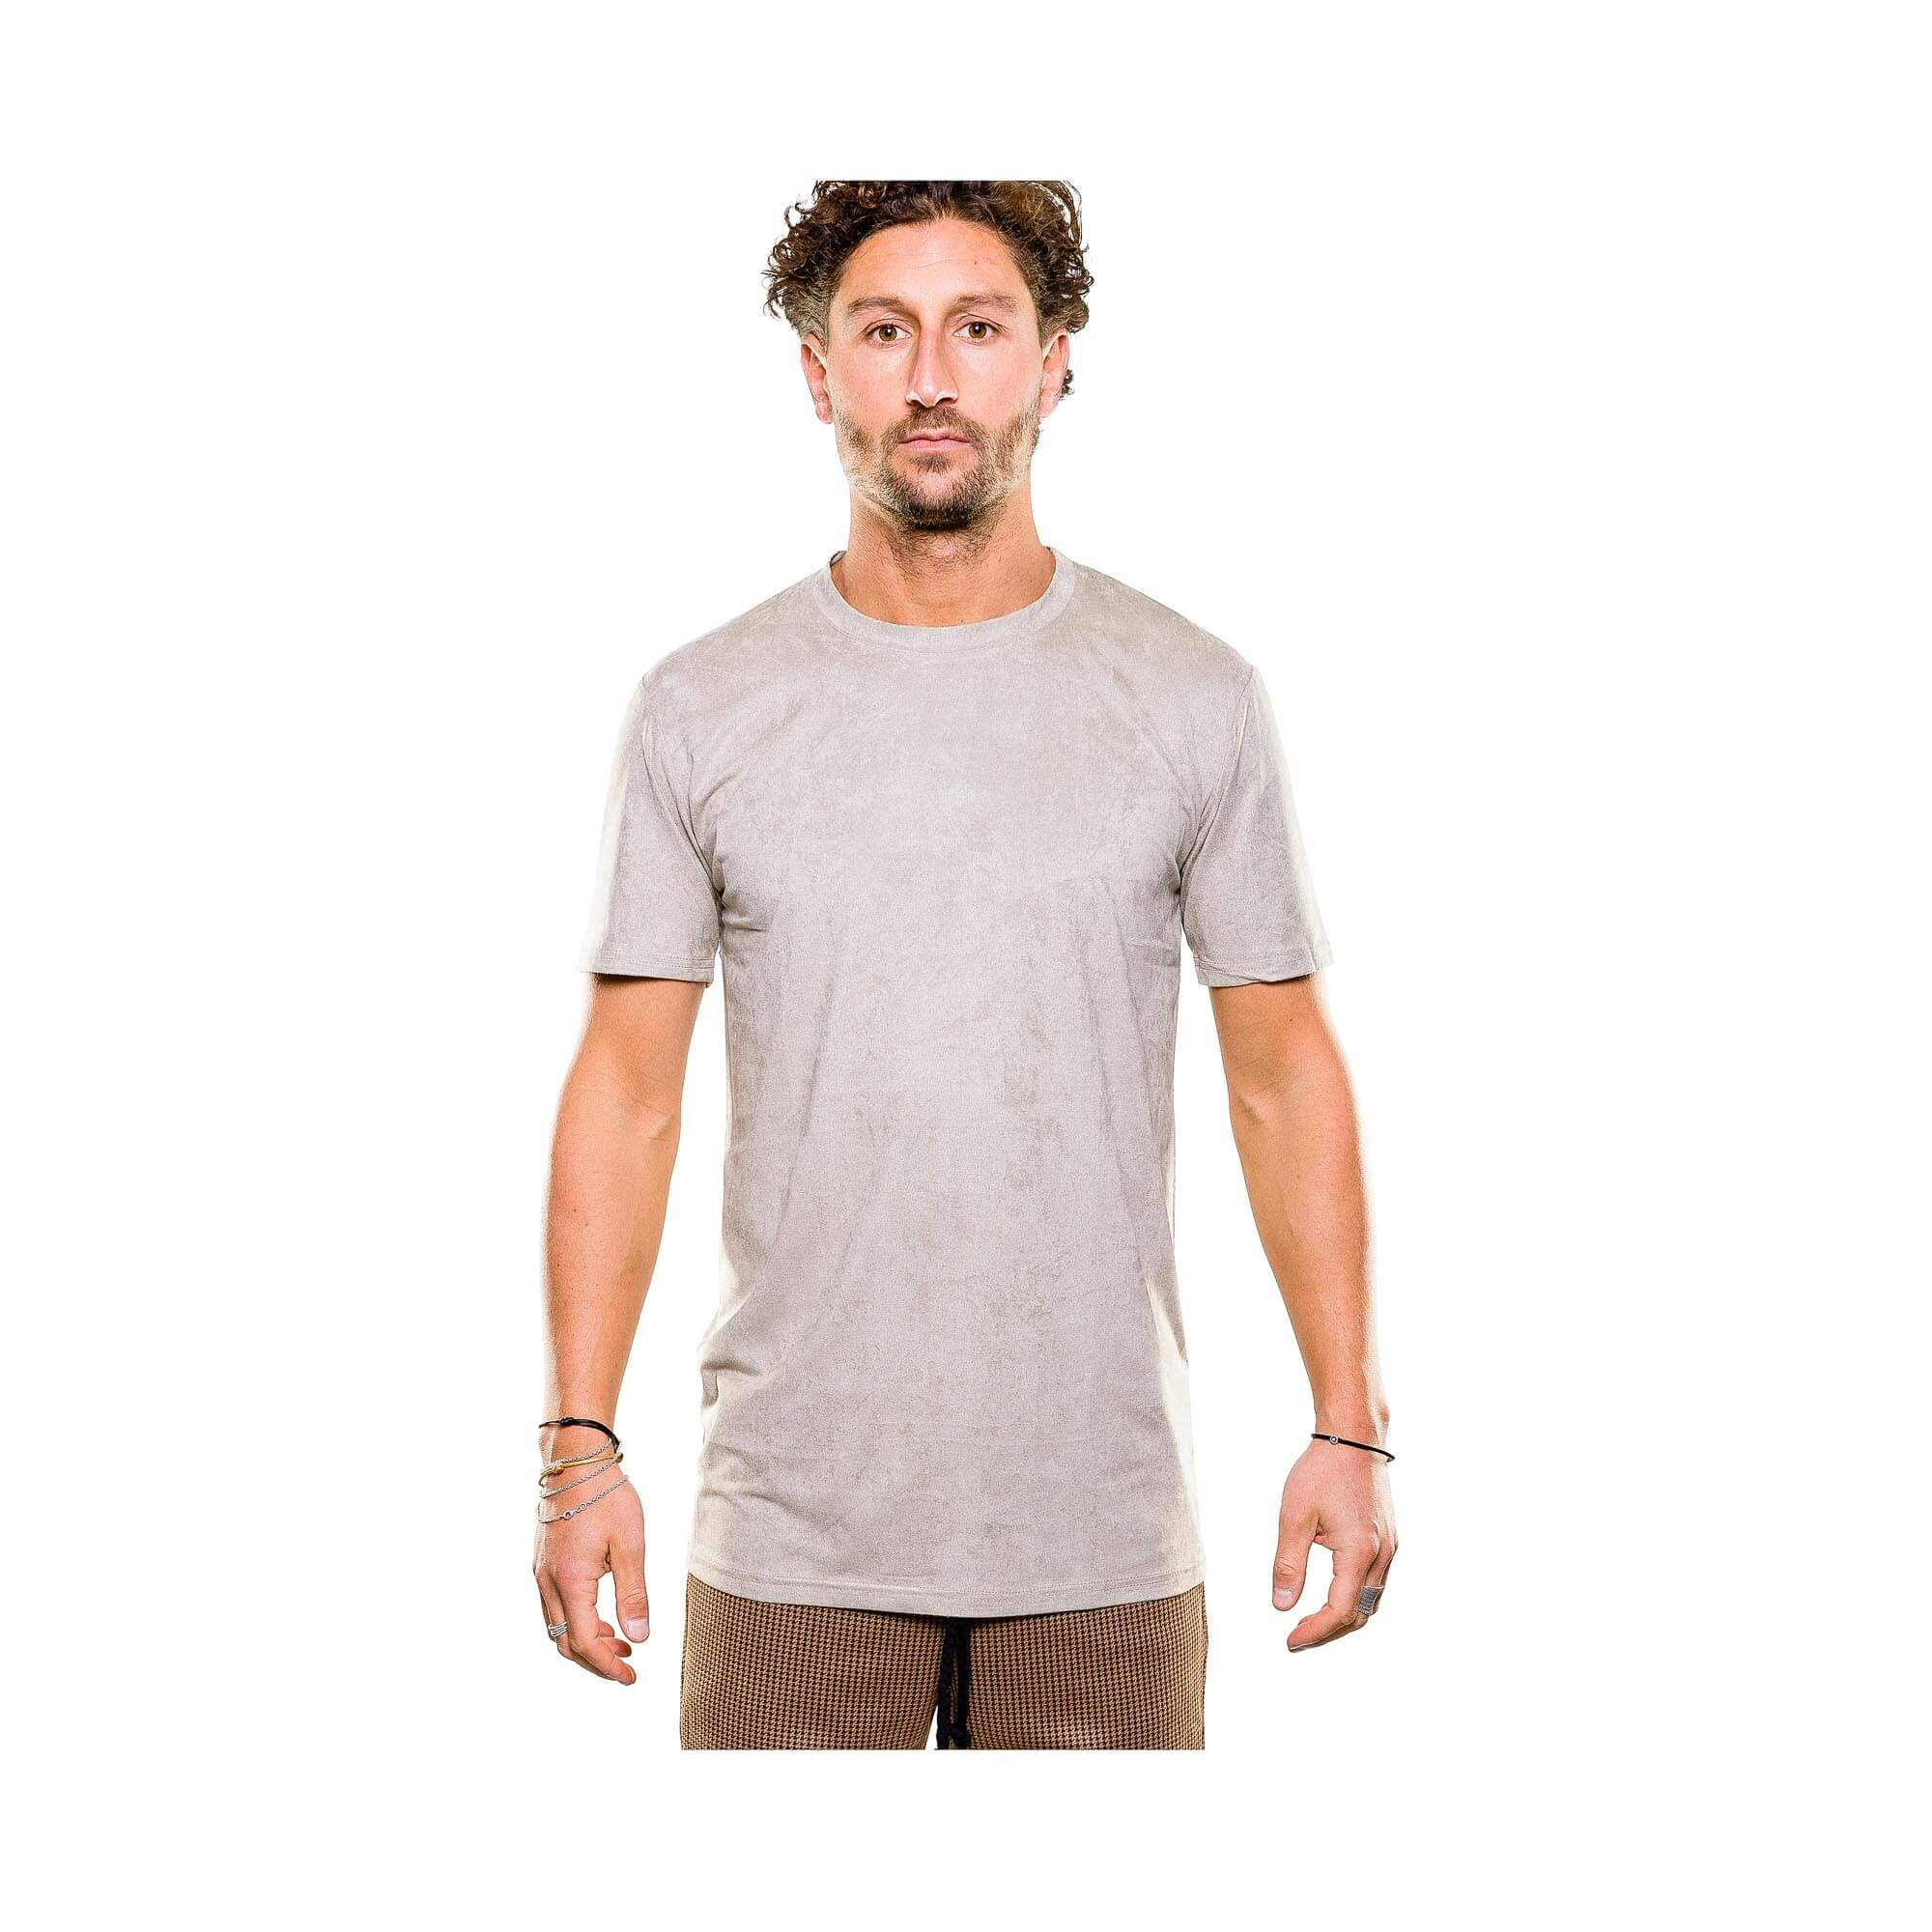 Suede tee beige - outfit